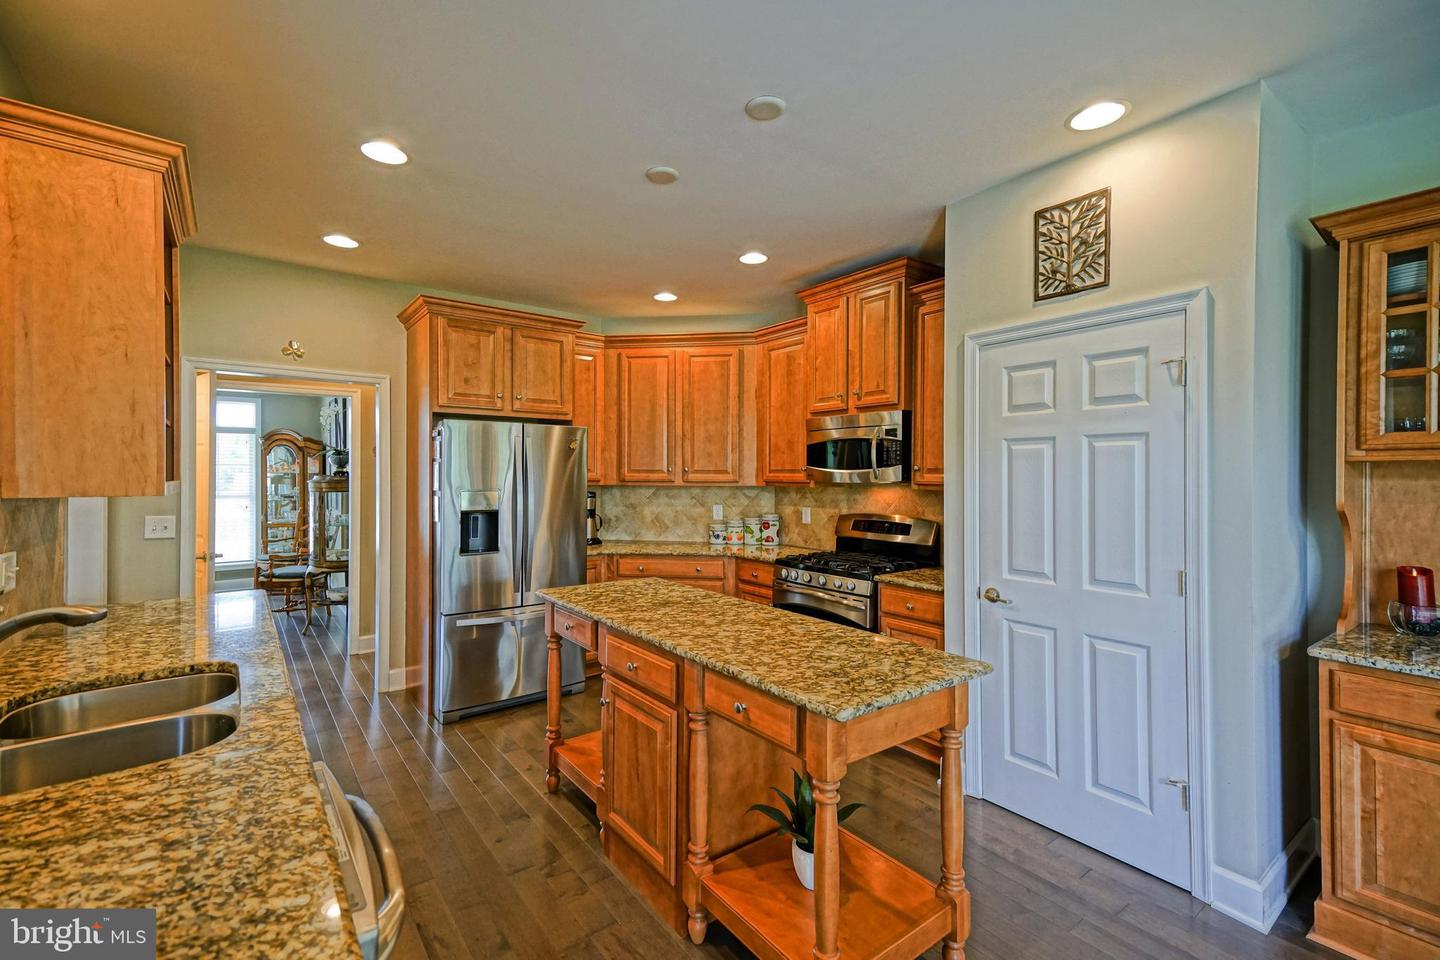 DESU139128-301667381063-2019-08-05-10-43-56 35222 Overfalls Dr N | Lewes, DE Real Estate For Sale | MLS# Desu139128  - Lee Ann Group